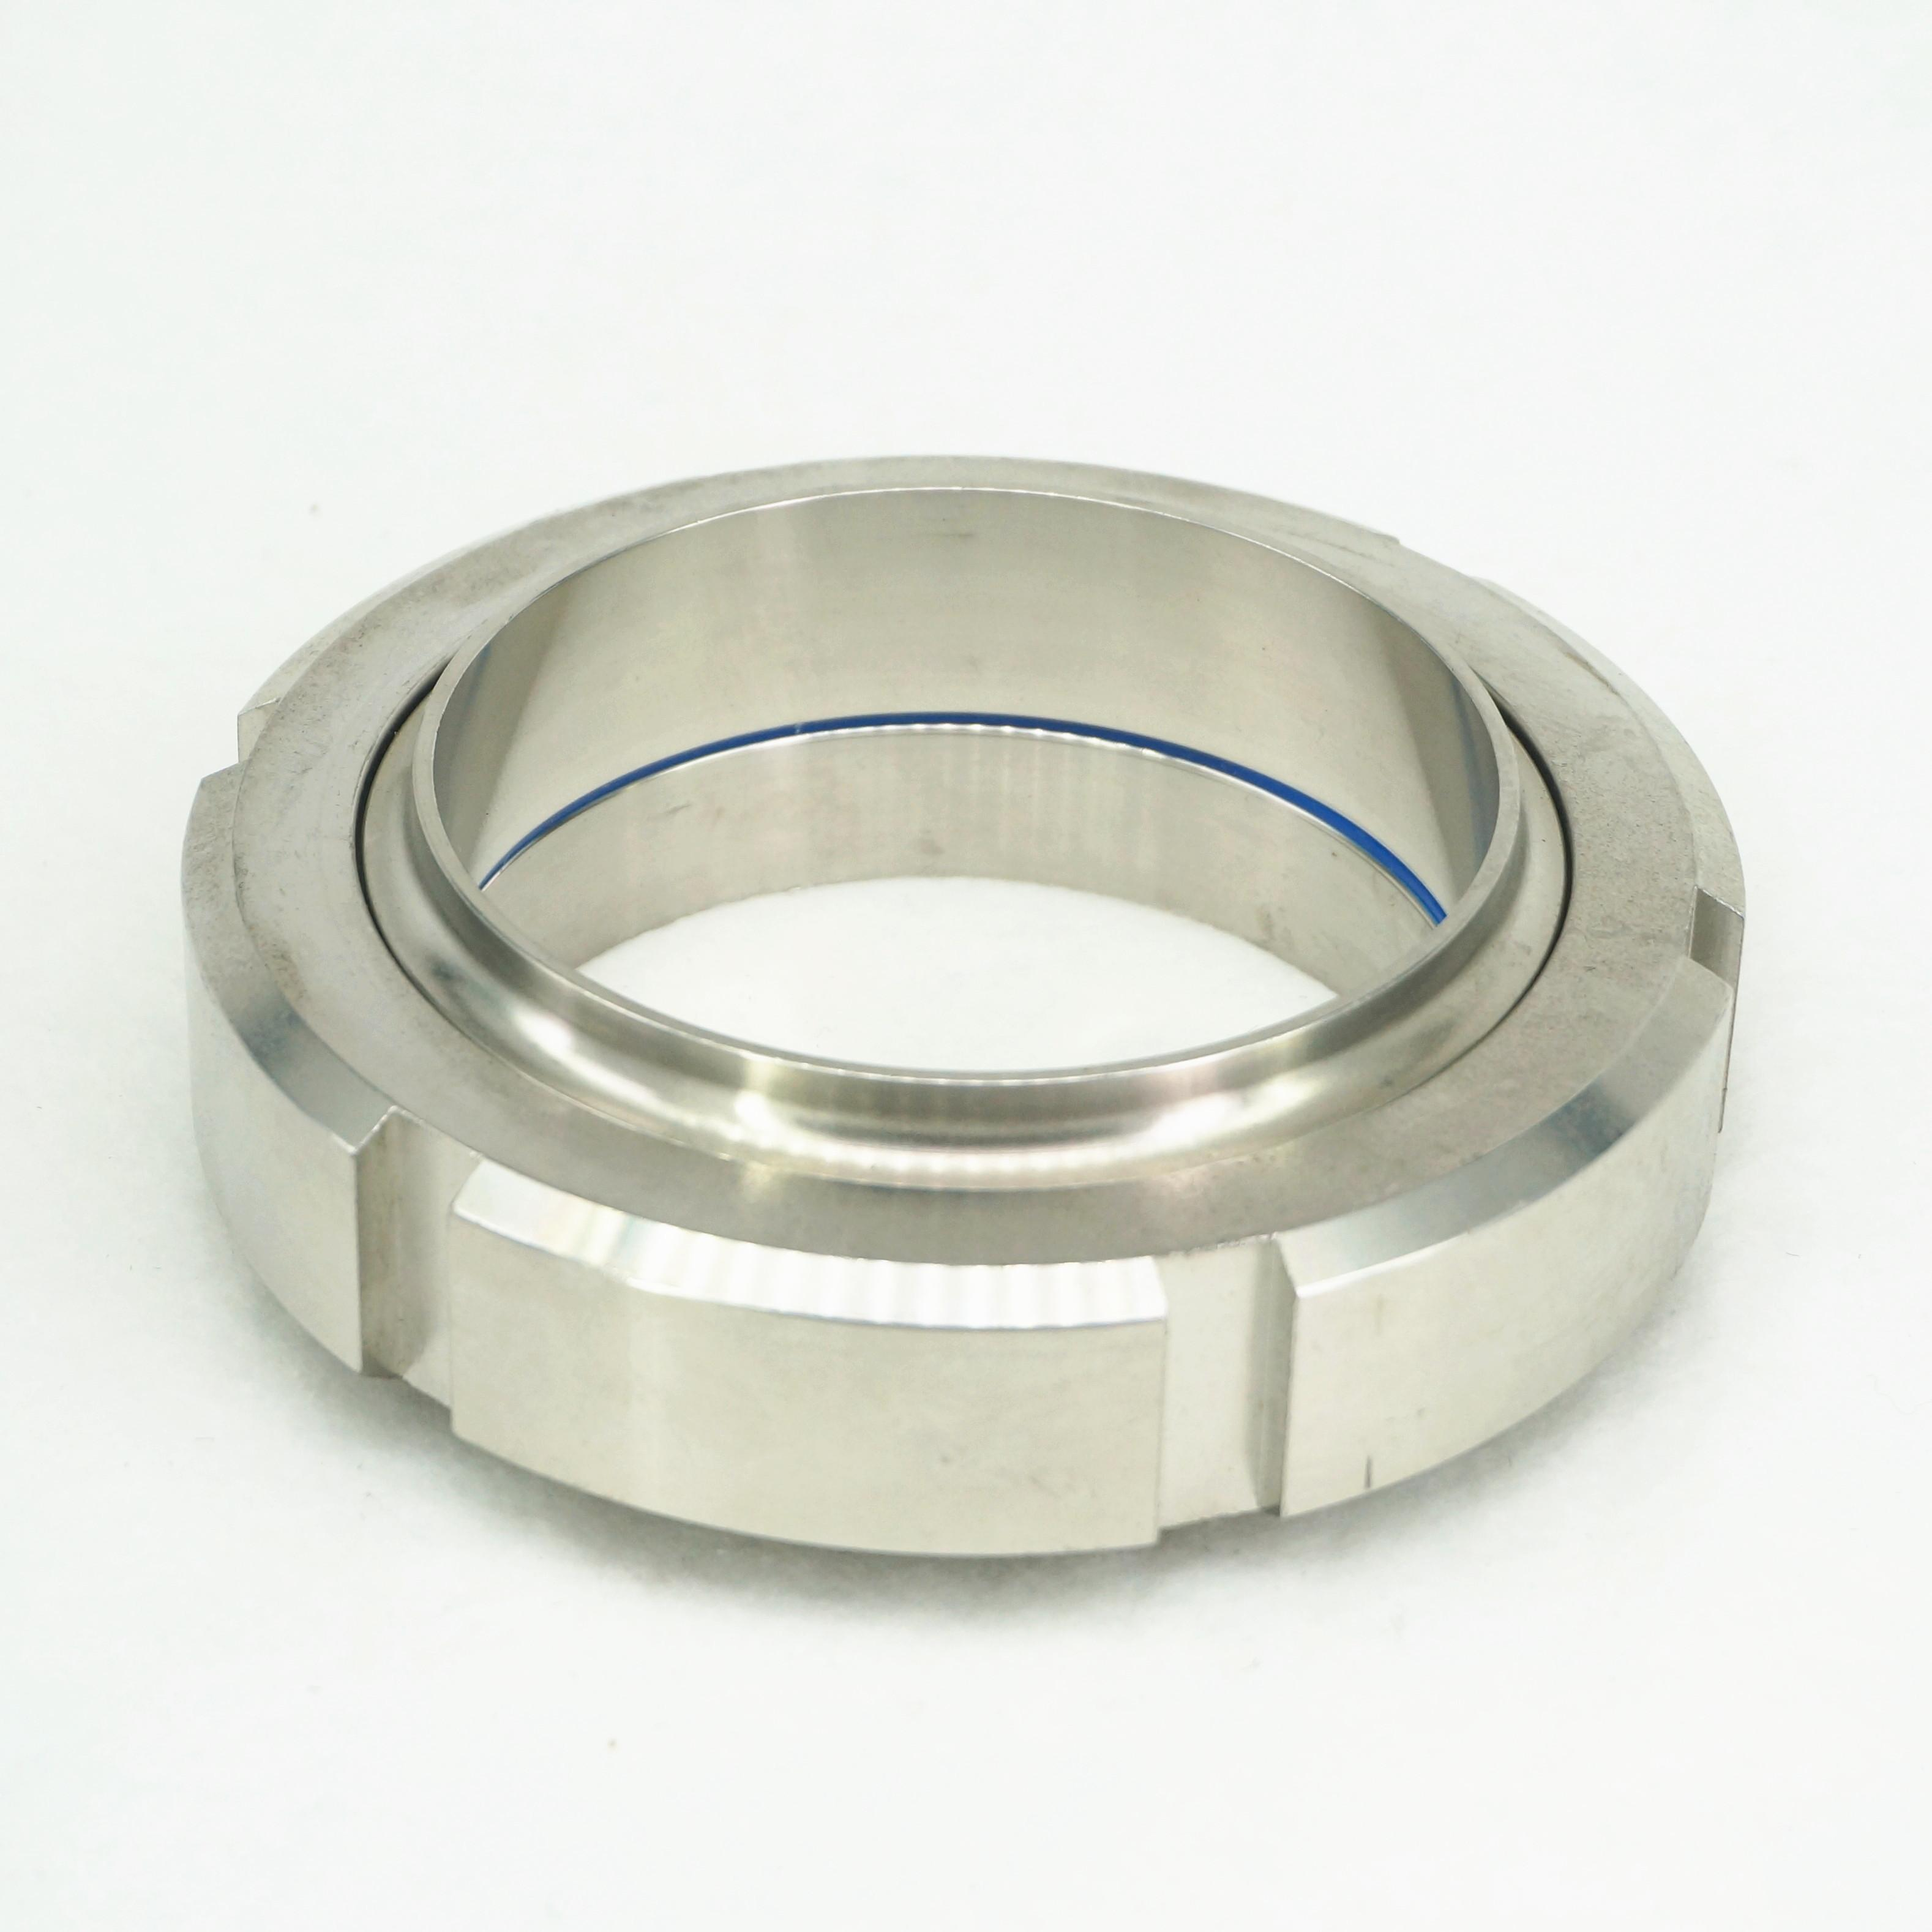 DN100 304 Stainless Steel Sanitary DIN Weld On Socket Union Set Pipe fitting new 60mm tee 3 way stainless steel 304 butt weld pipe fitting ss304